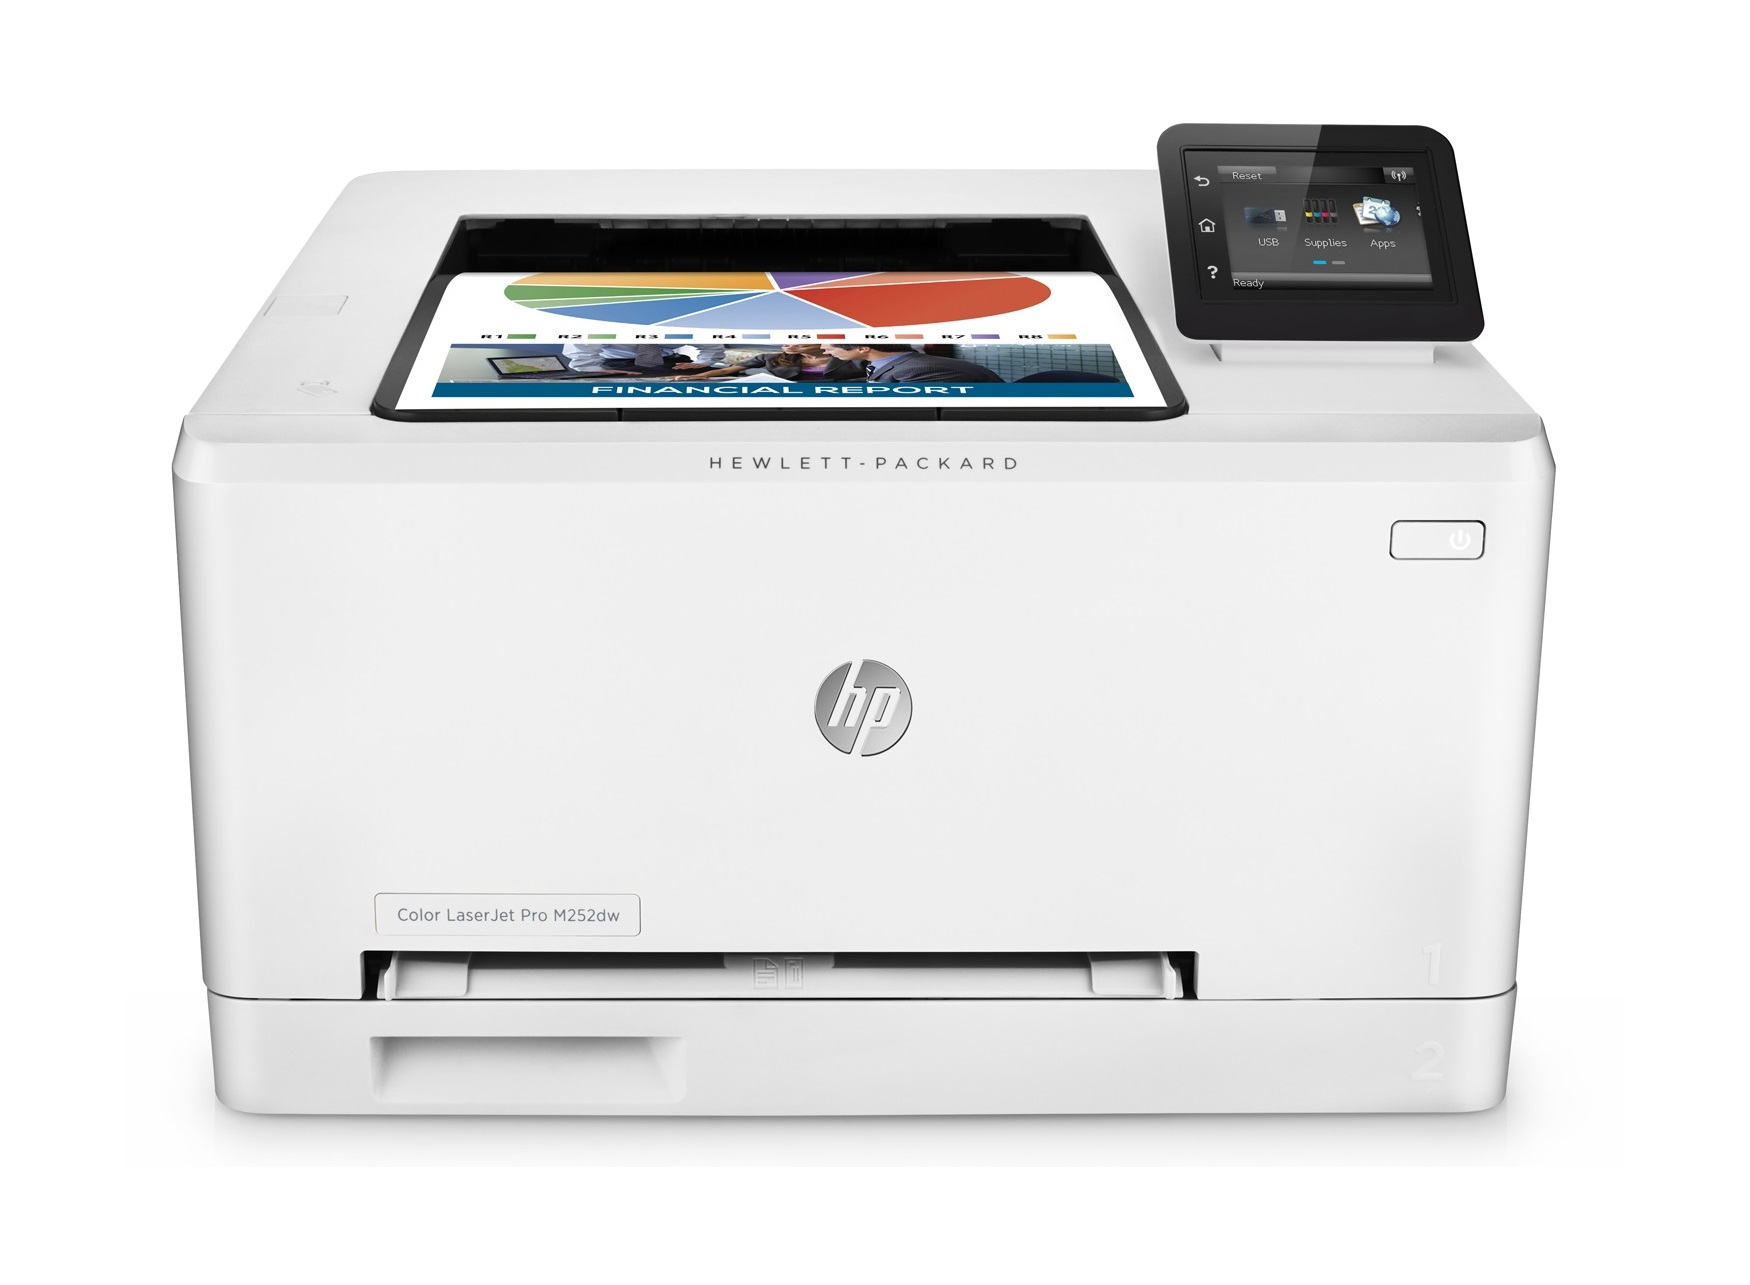 HP B4A22A  Color LaserJet Pro 200 M252dw Printer USCAMXLA (no ARCLBR)-ENESFR